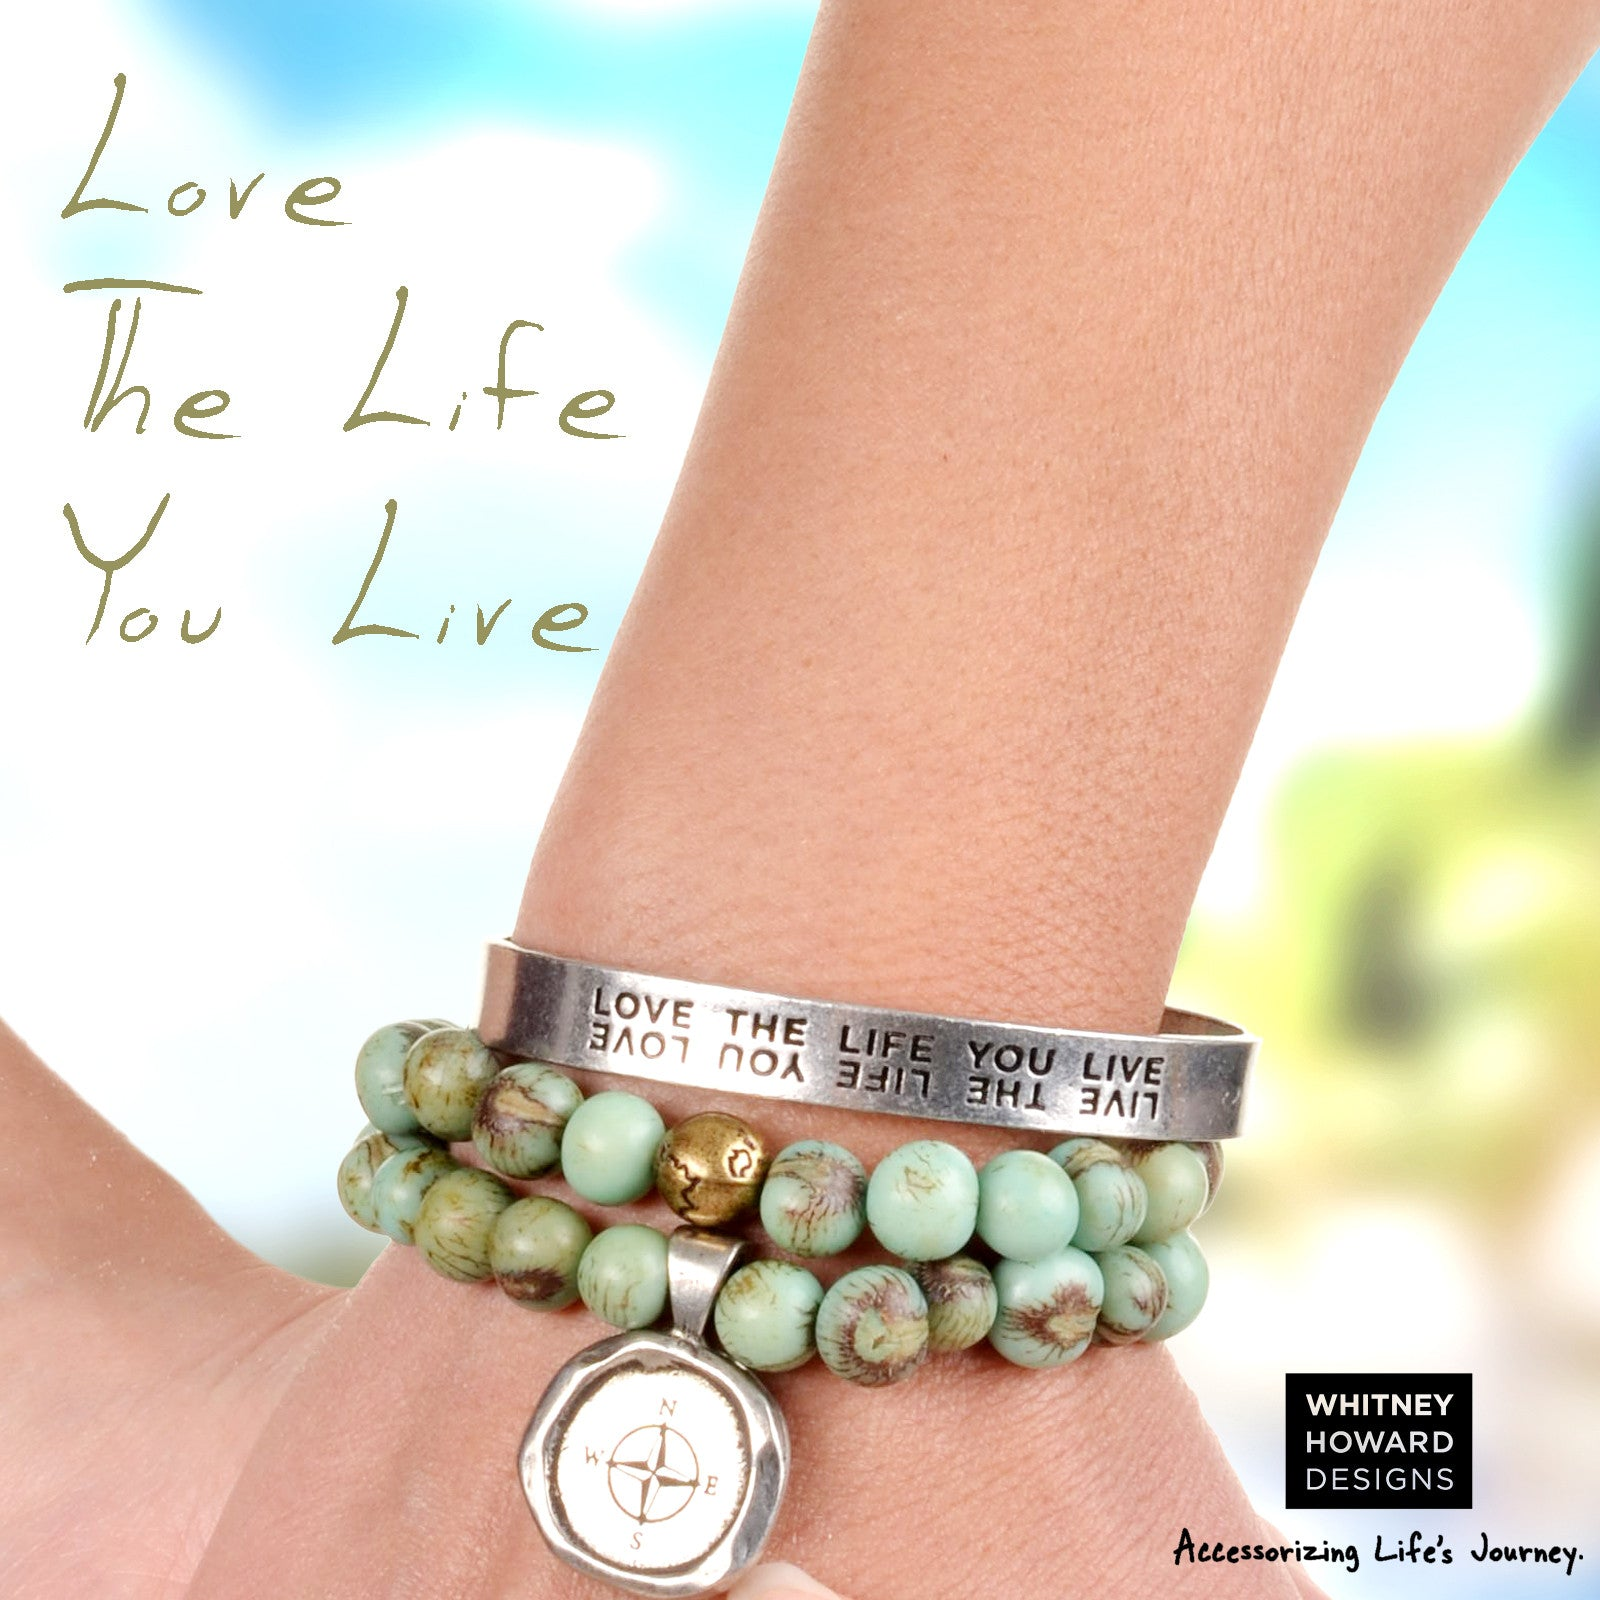 Live the Life You Love - Whitney Howard Designs